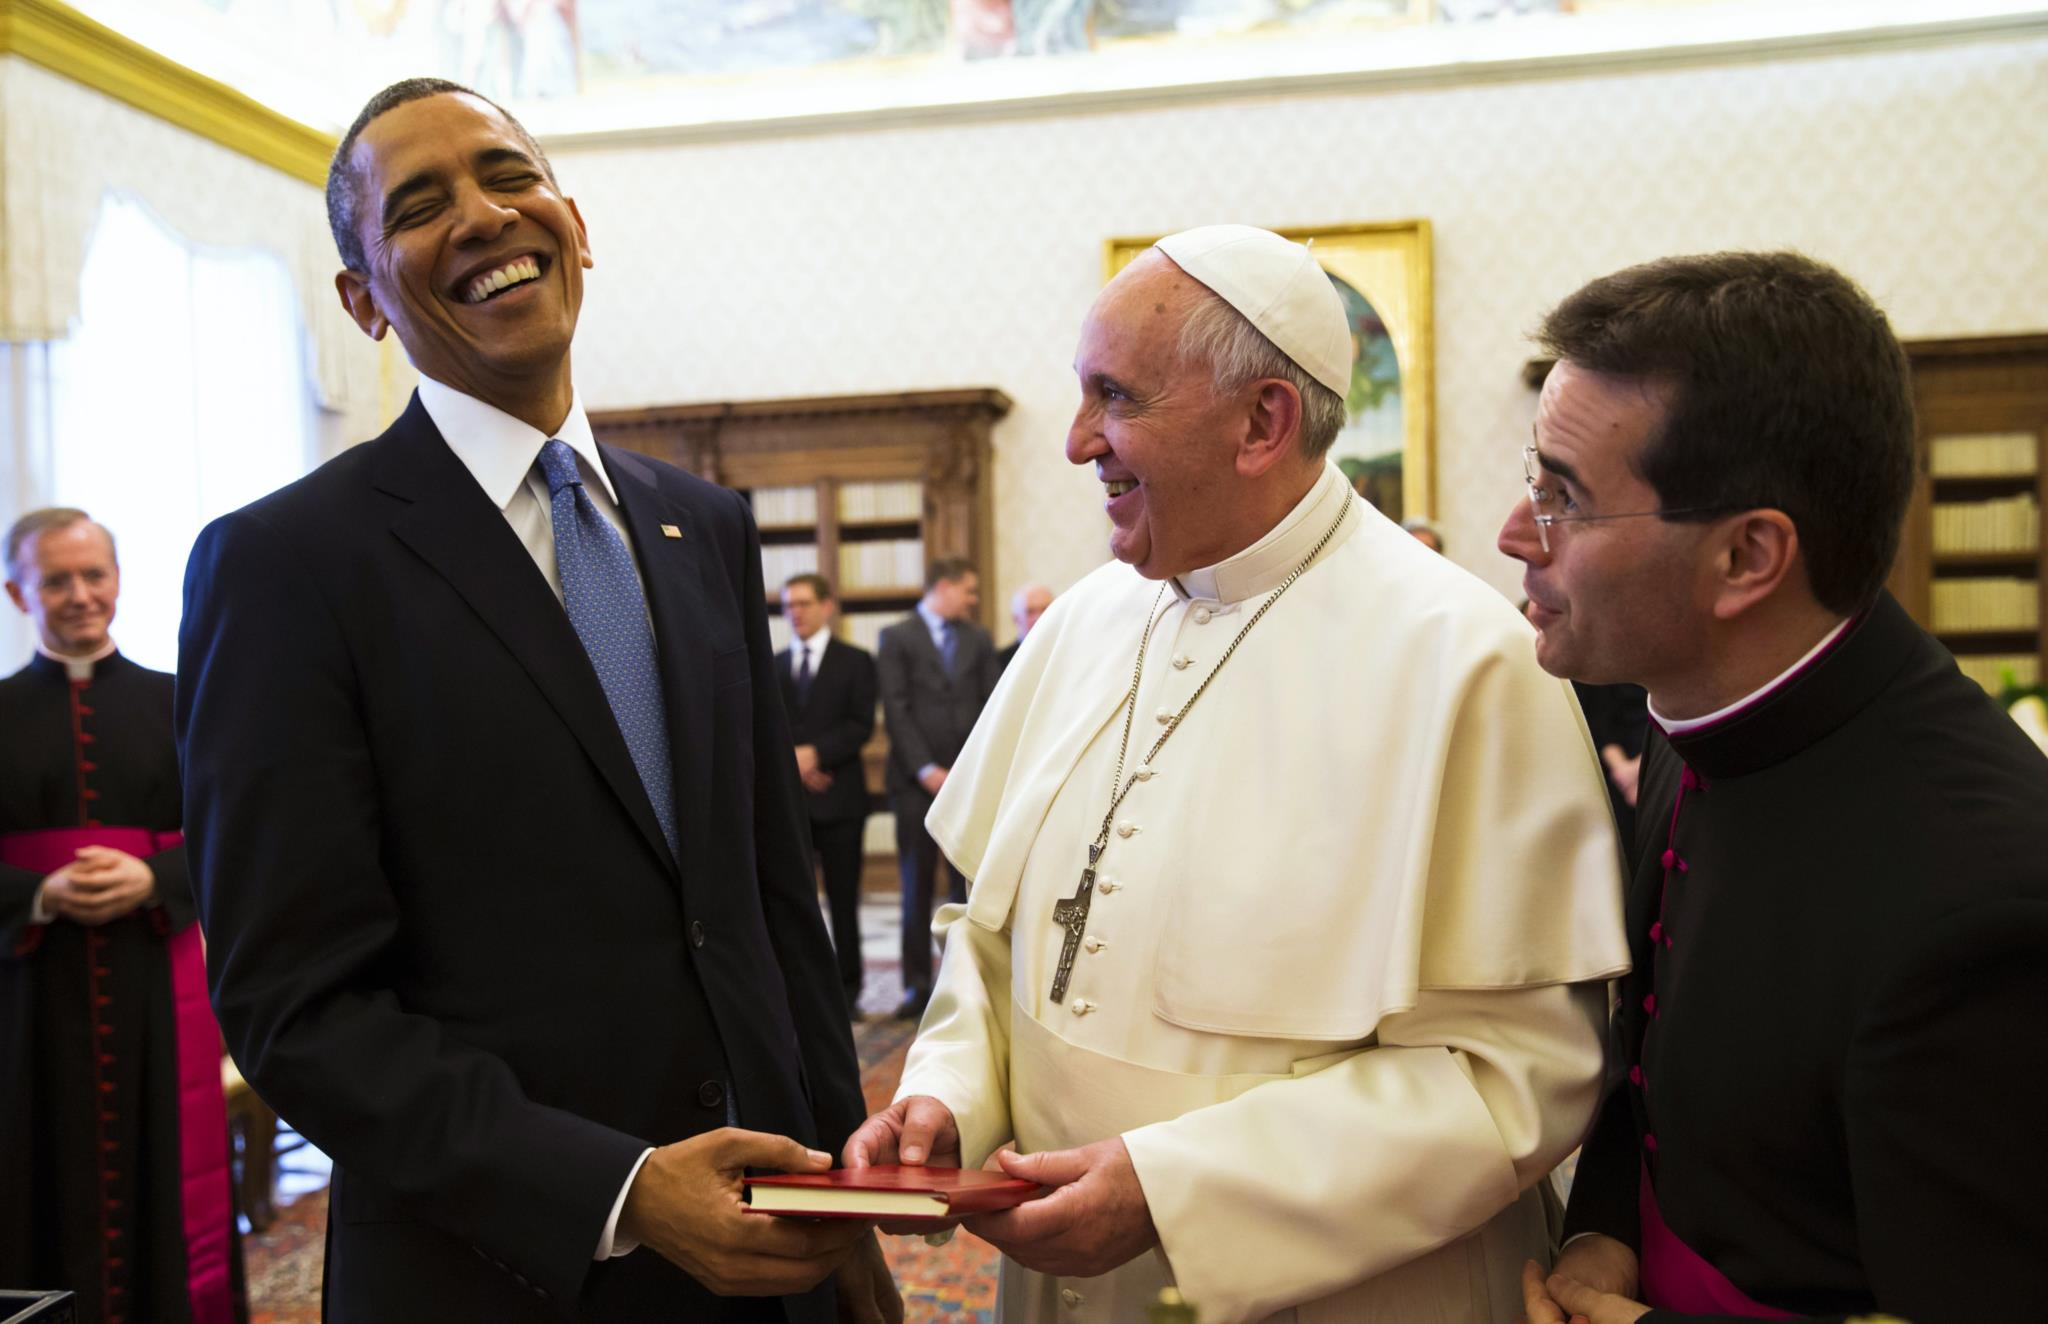 Obama troca presentes com o papa Francisco no Vaticano, 2014